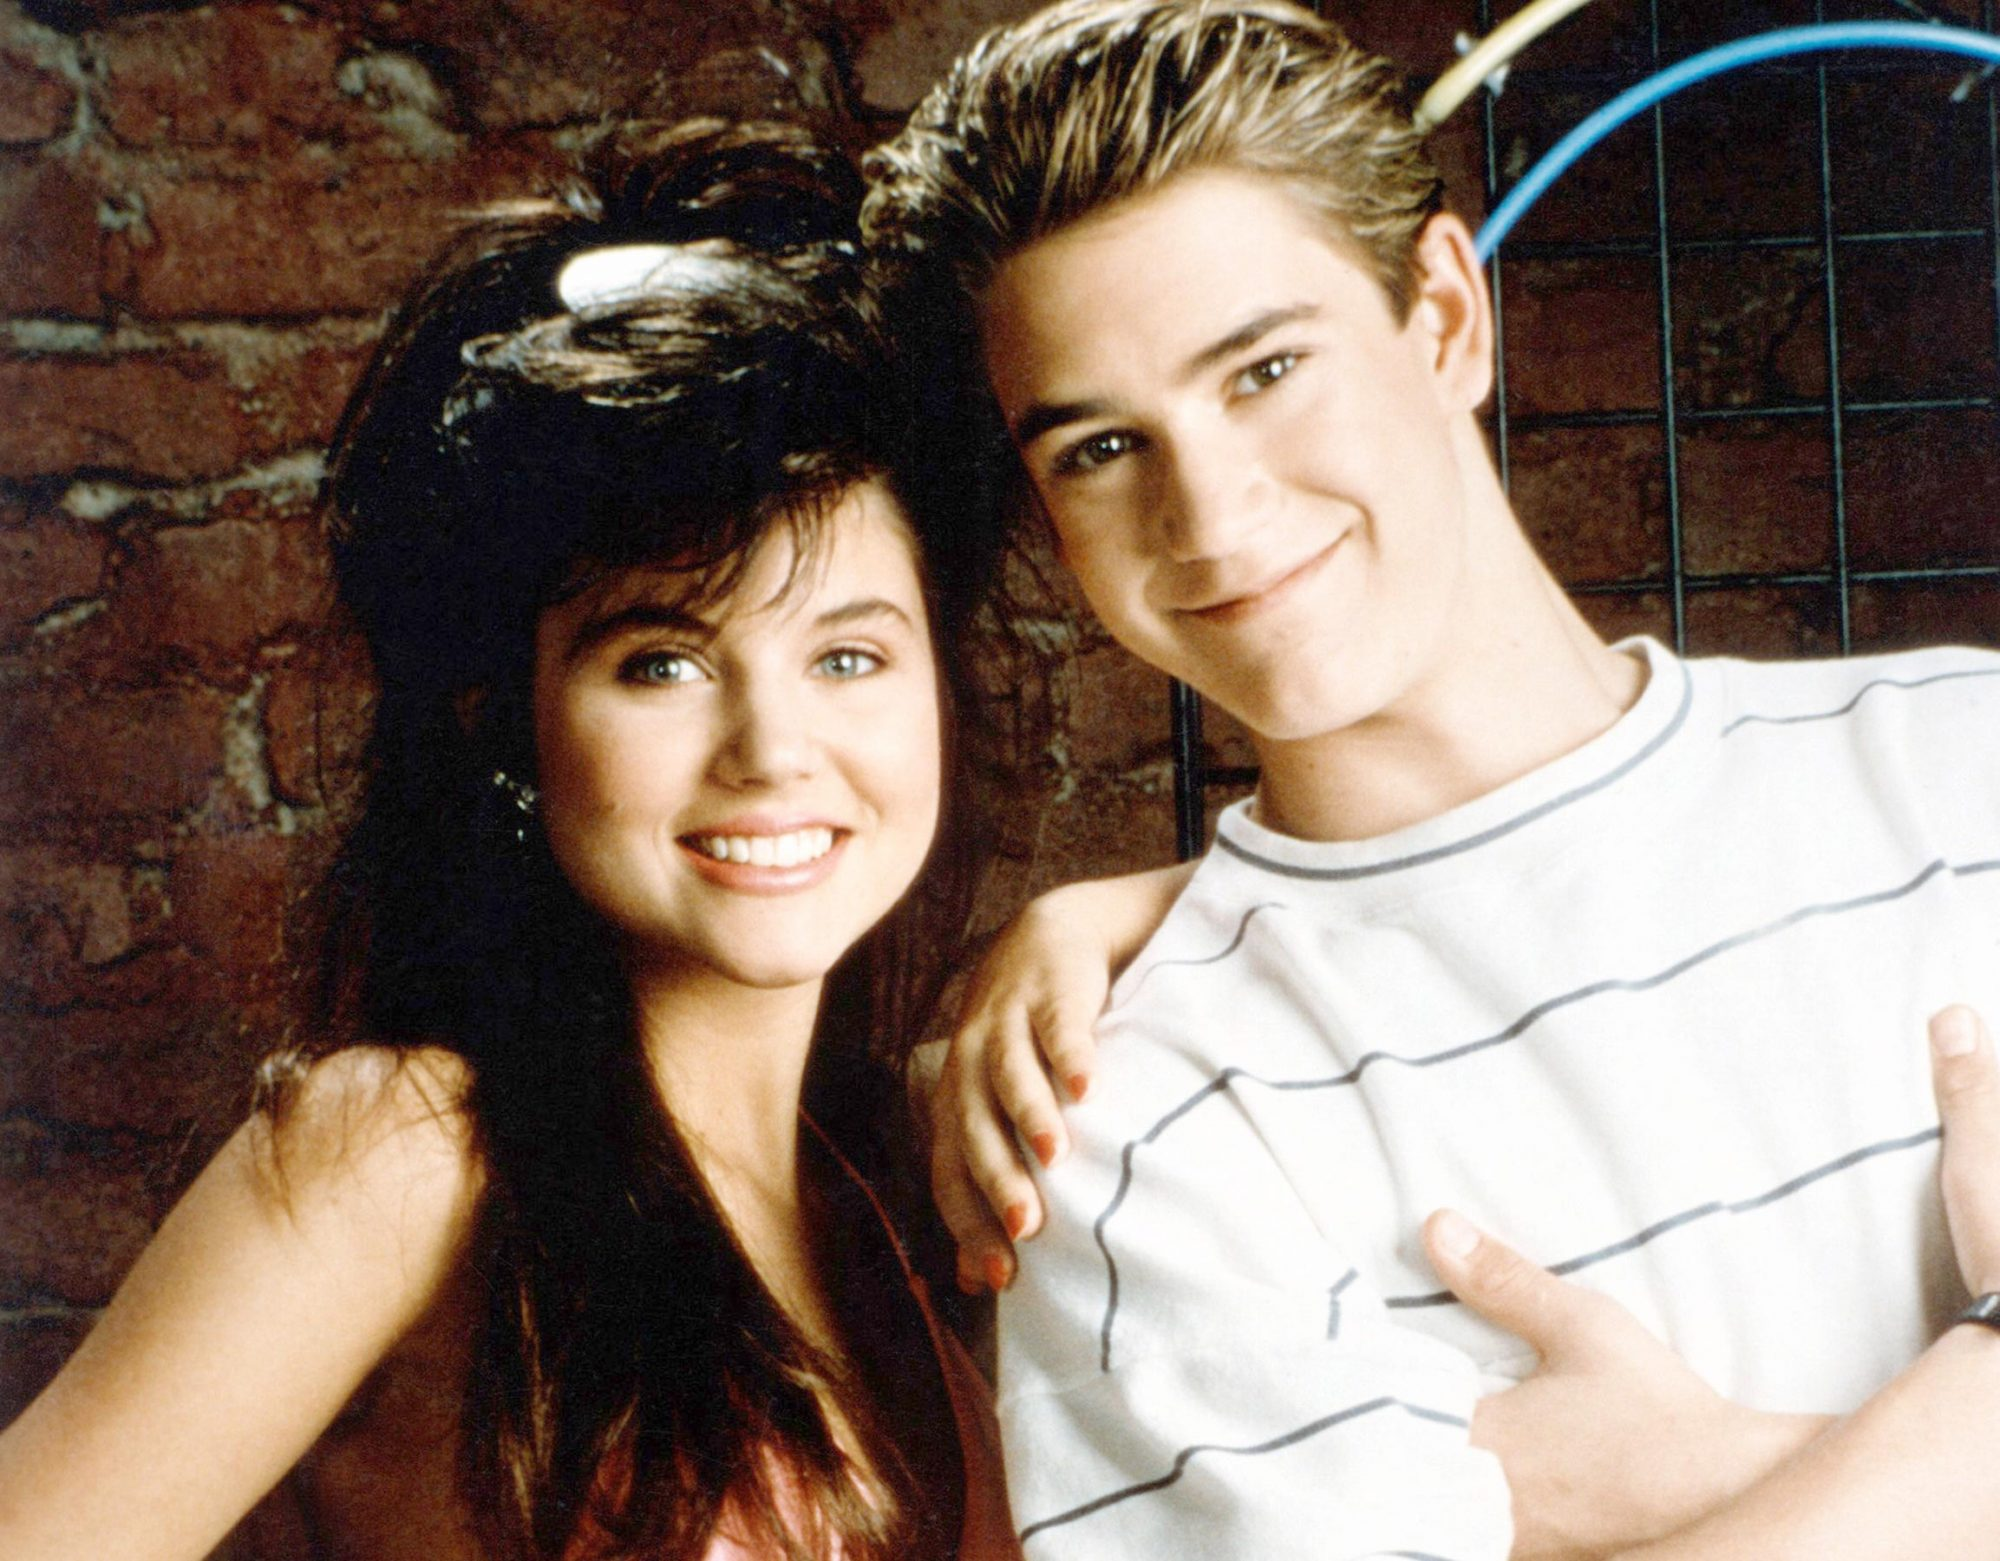 SAVED BY THE BELL, (from left): Tiffani-Amber Thiessen, Mark-Paul Gosselaar, 1989-93. © NBC / Courte